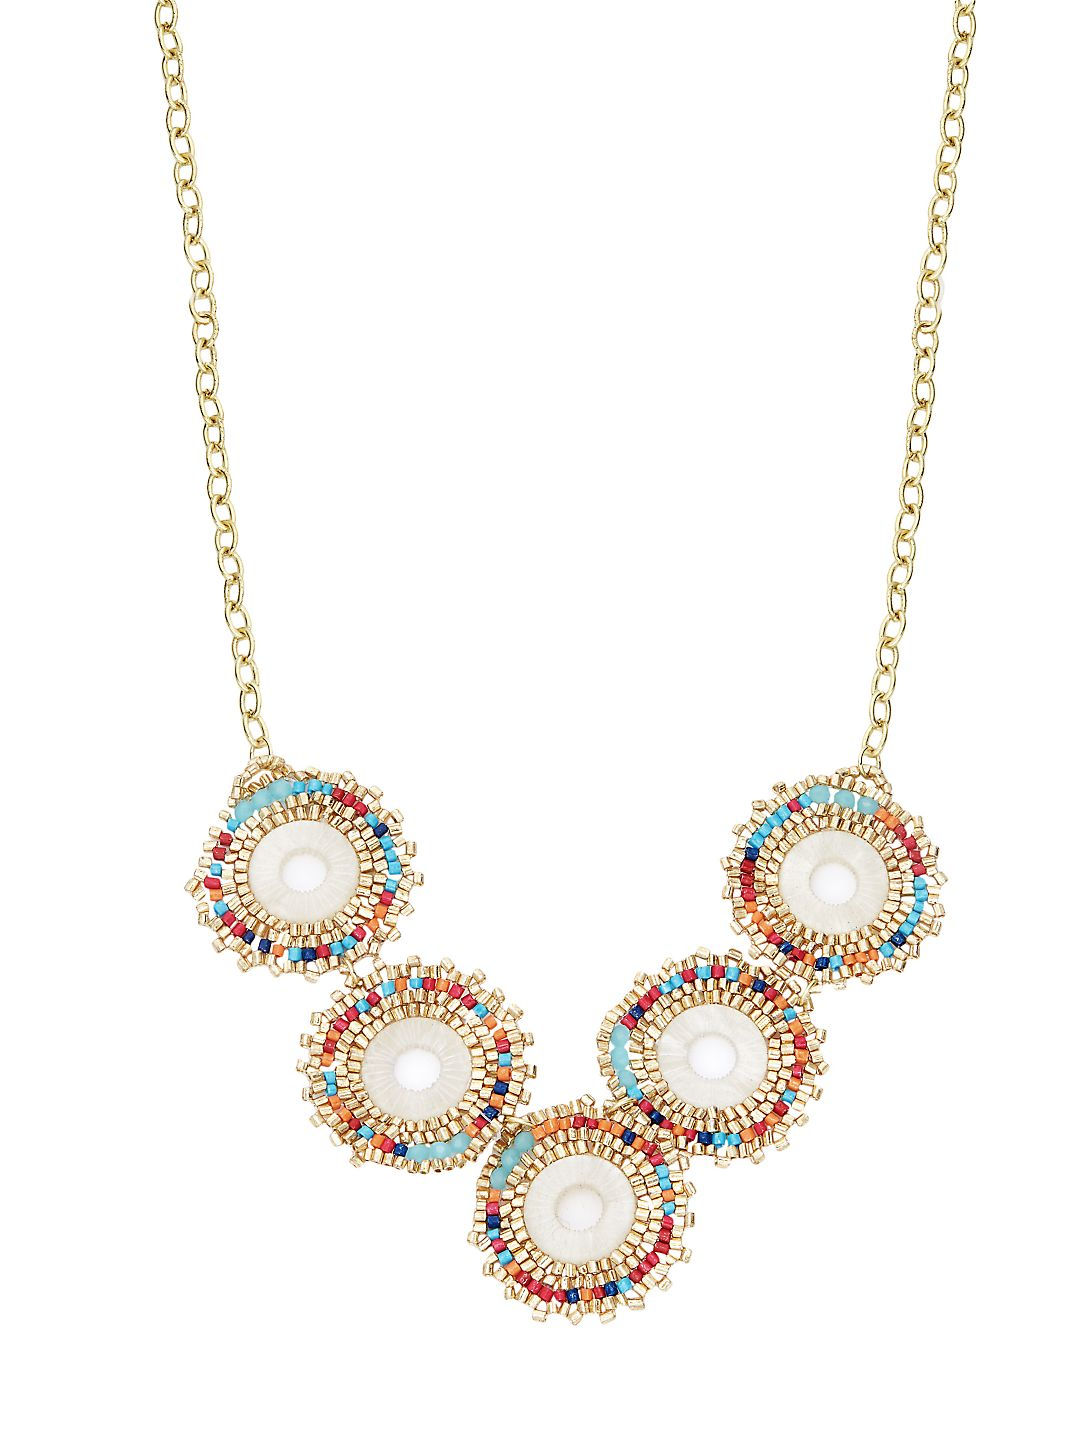 Goldtone and Multicolor Crystal Beads Necklace